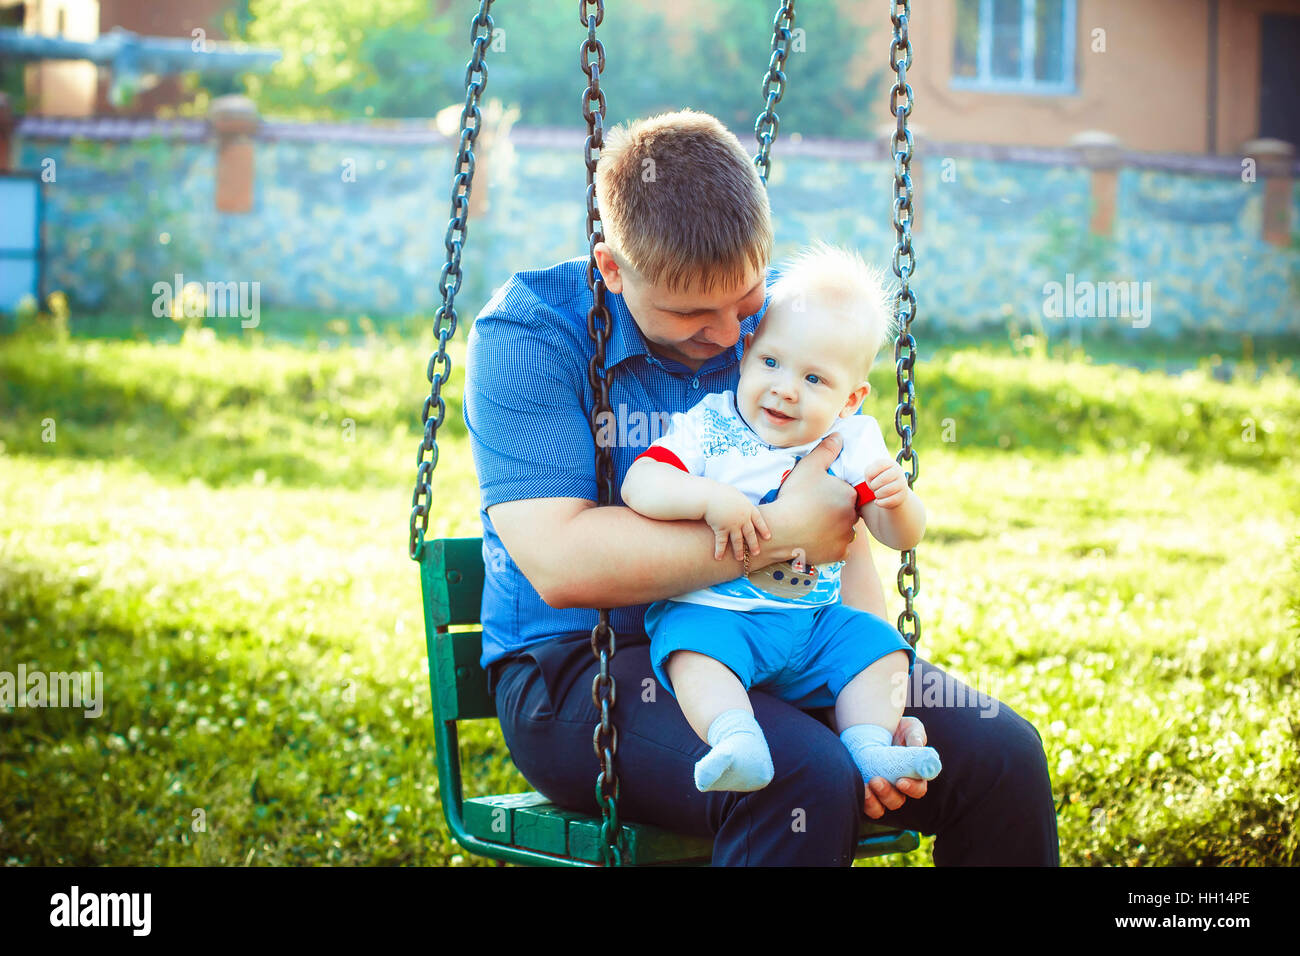 father, embracing the child on your lap - Stock Image